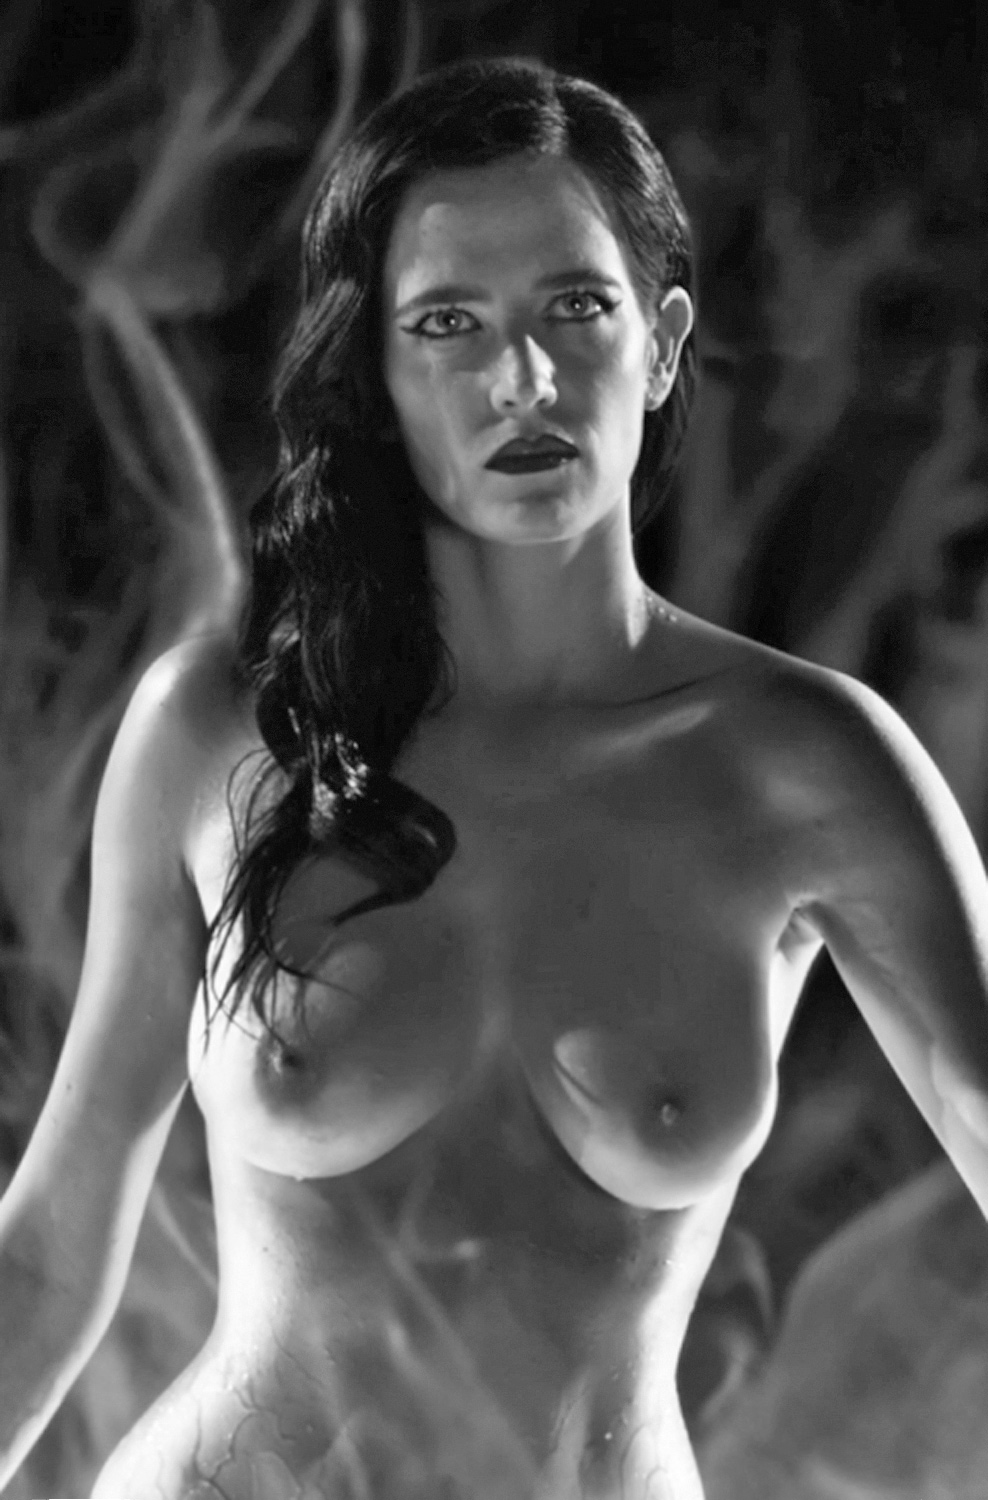 Nudes Eva Green nudes (64 photos), Sexy, Sideboobs, Feet, legs 2018